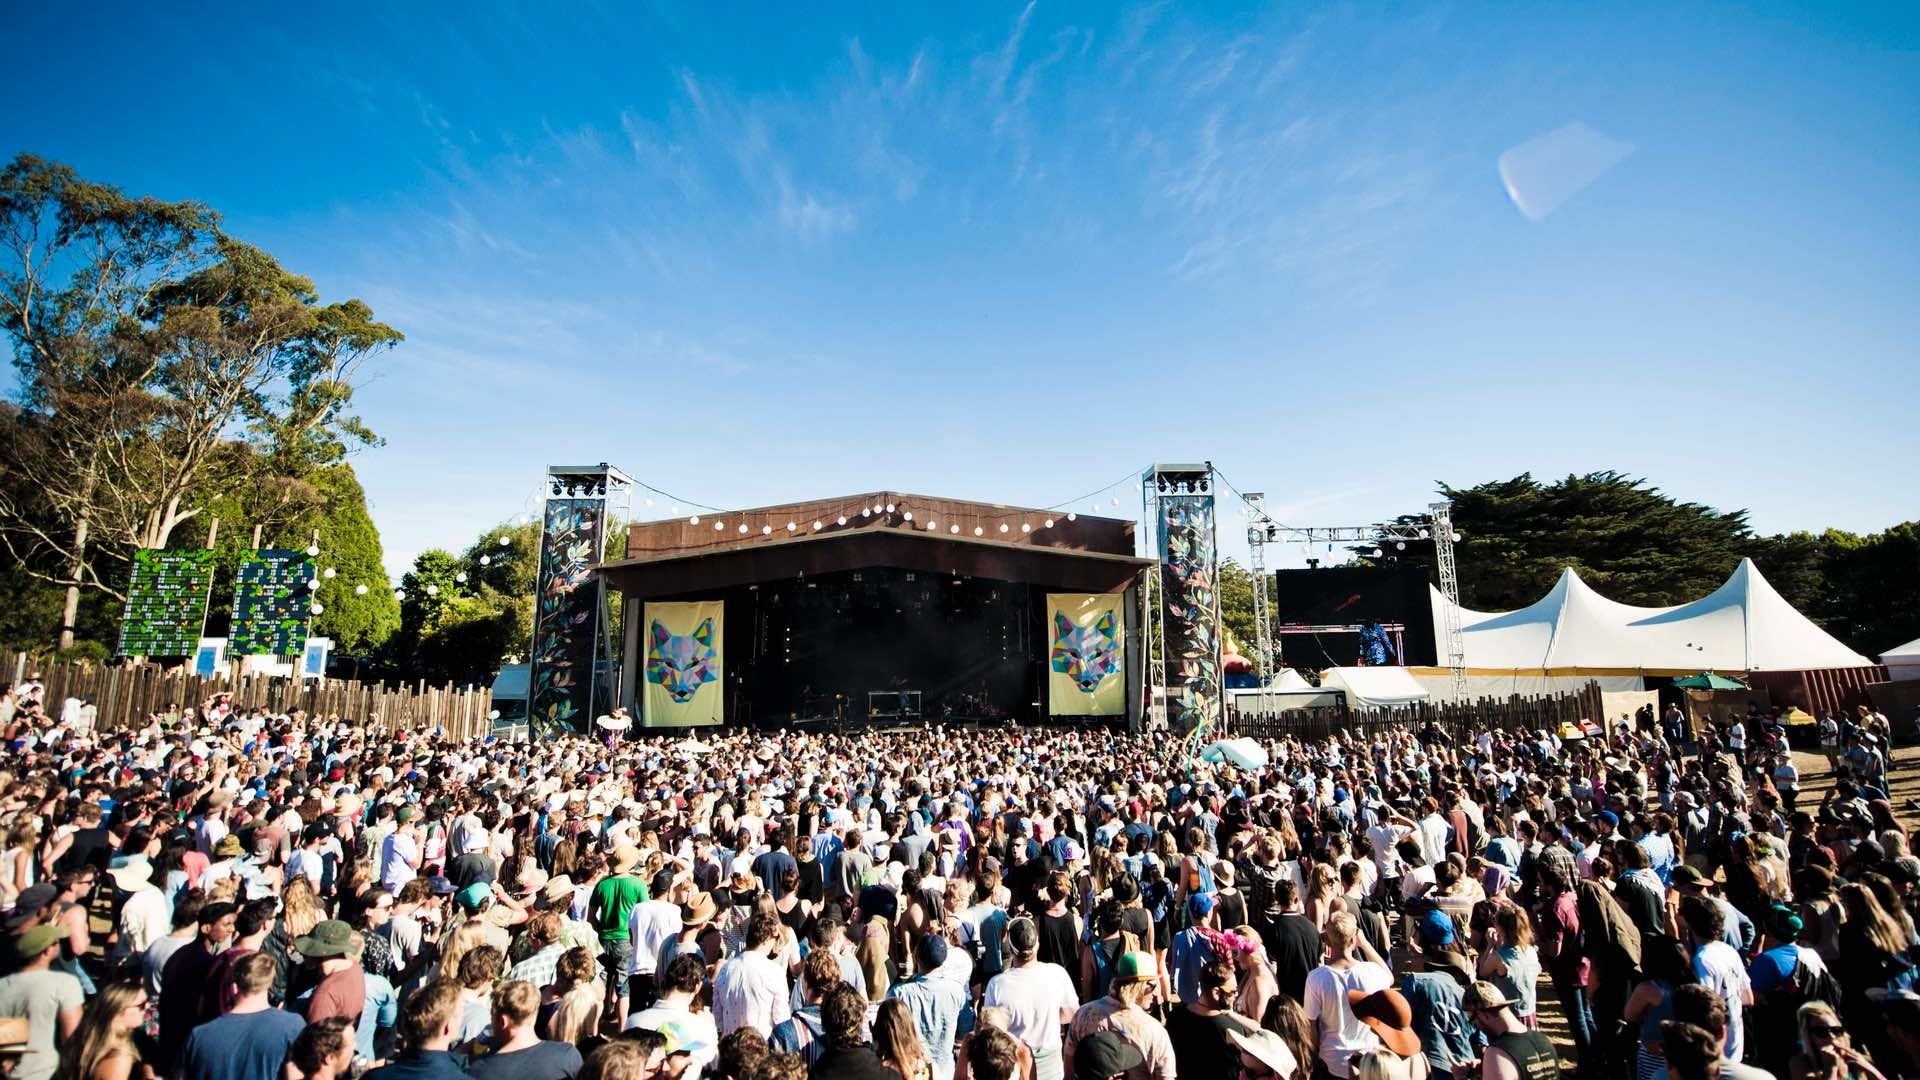 Falls Festival Is Forging Ahead with Plans for Its 2020 Music Festival